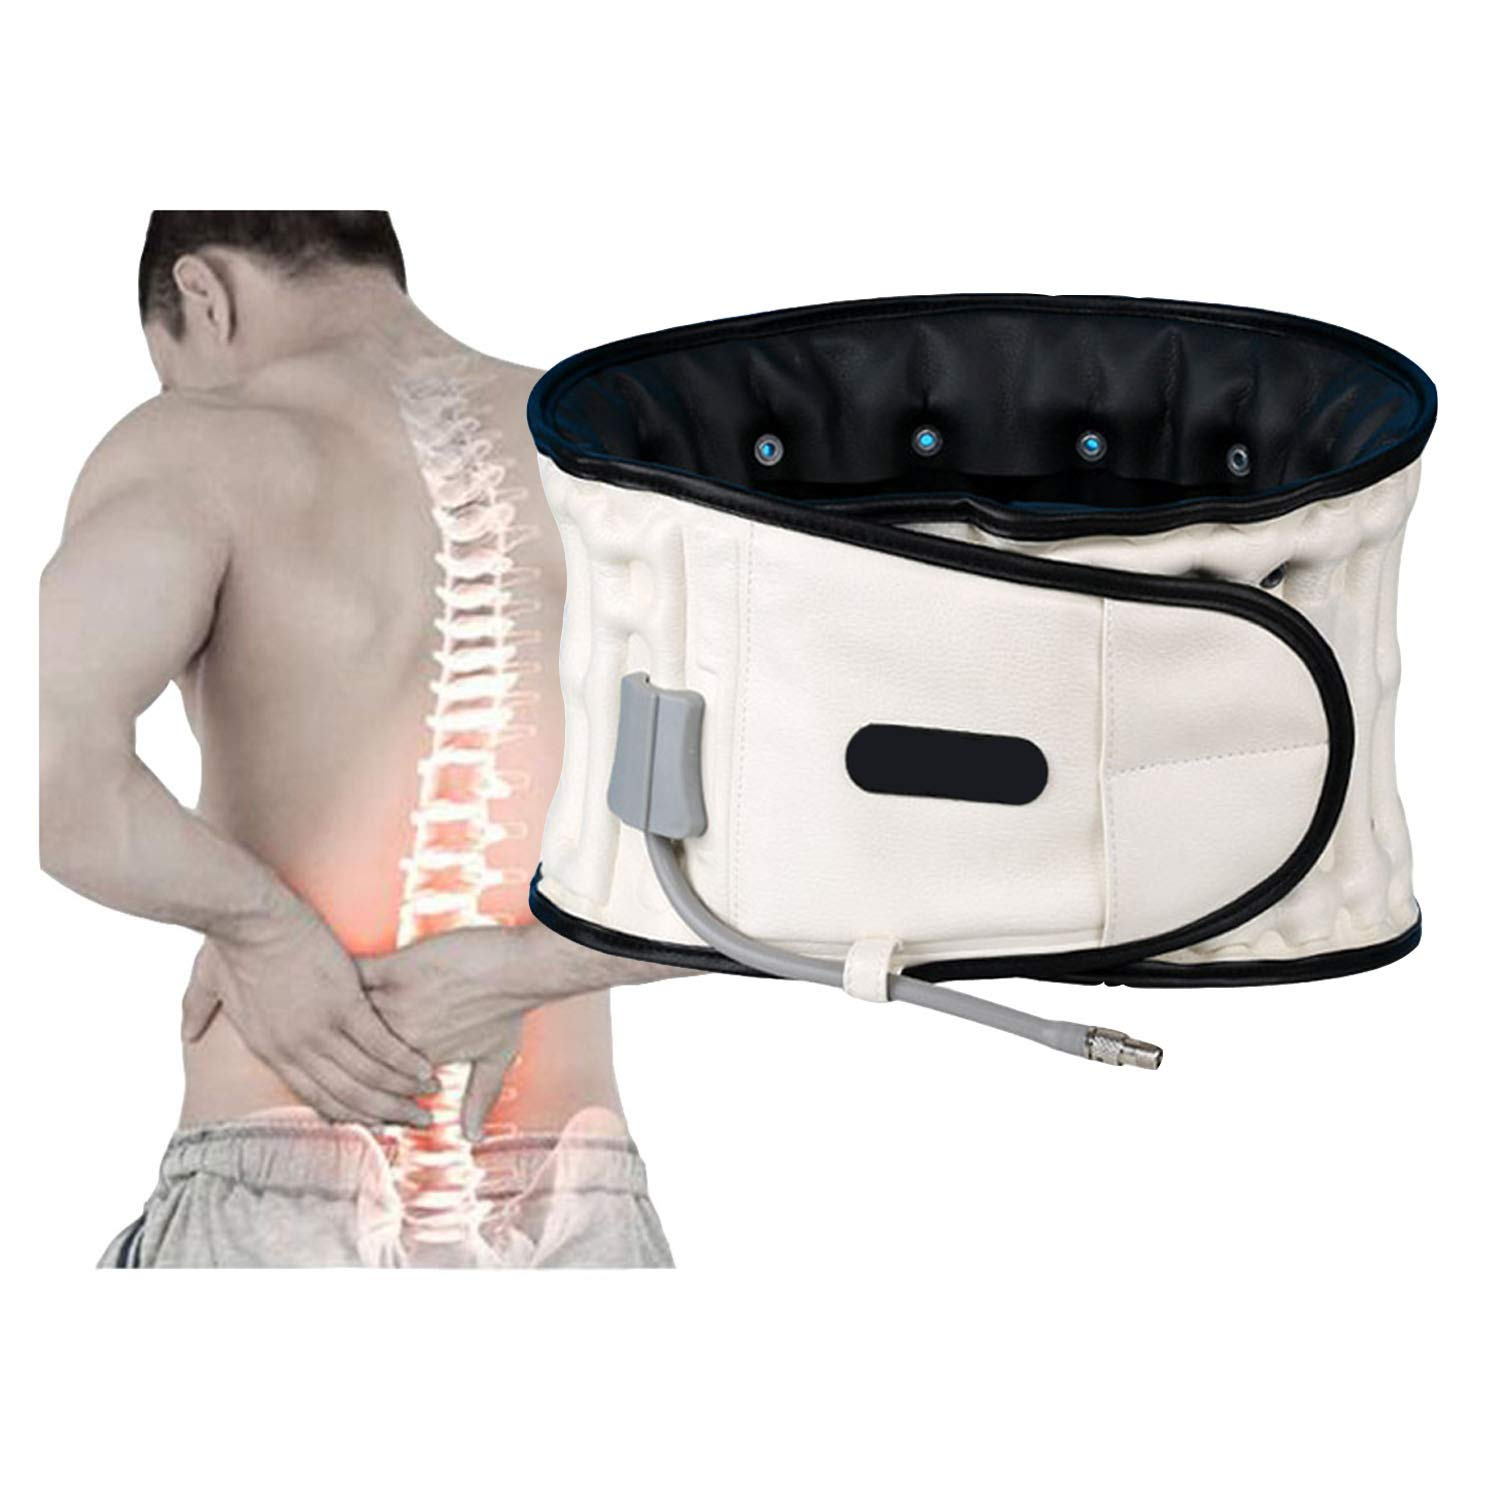 Improving Back Pain By Physio Decompression Belt,Back Pain Relief Spine Support Belt for Men and Women(29-49inches). (White)